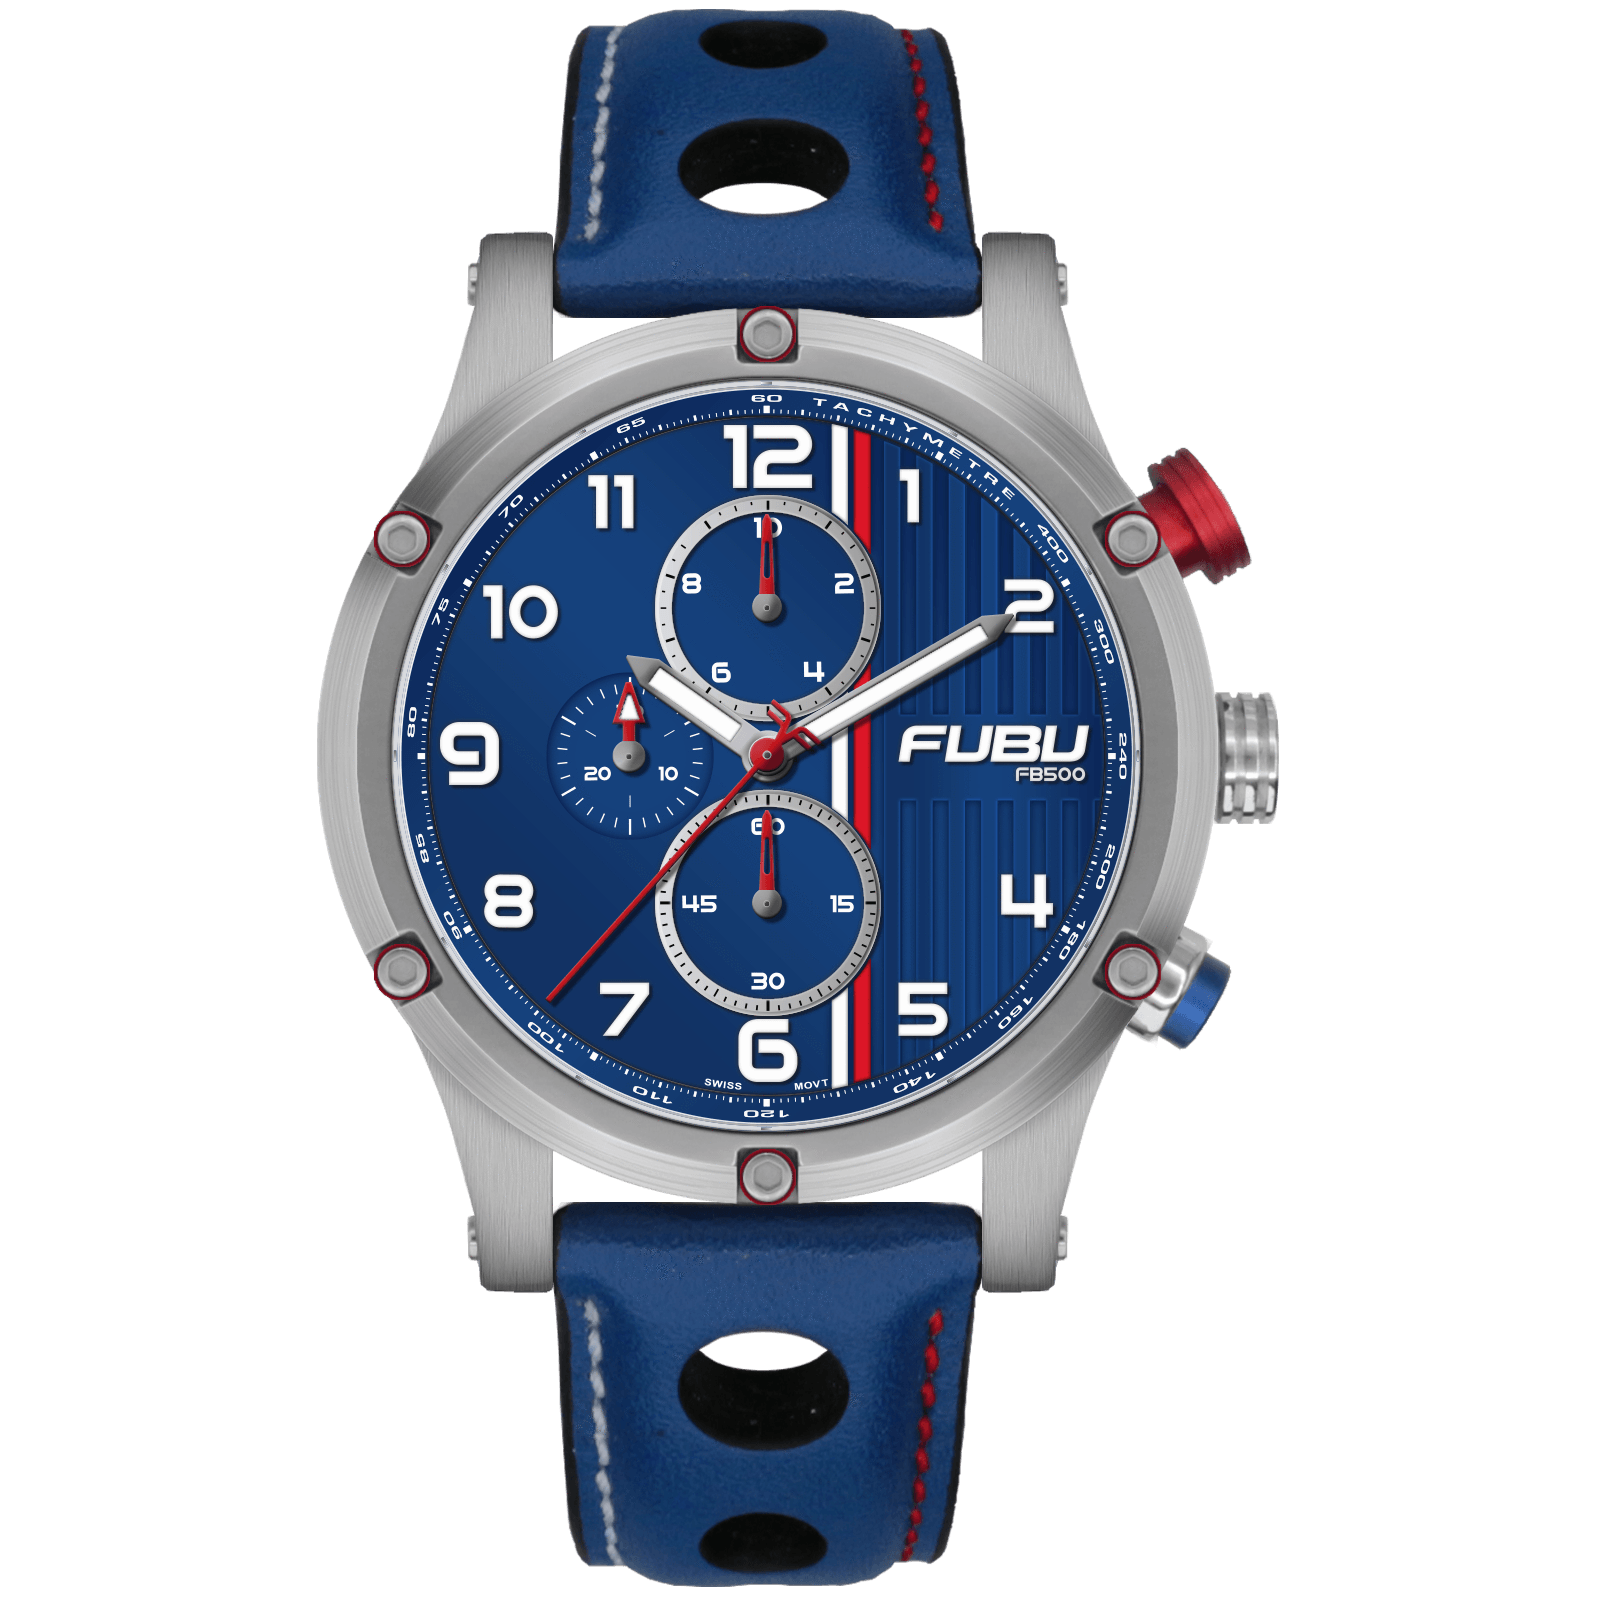 FB500 #92 - FUBU Watch Swiss Made Movement, Sapphire Crystal, Quick Release System, 10ATM water resistance. 24 Month Warranty. Lifestyle Affordable Timepieces